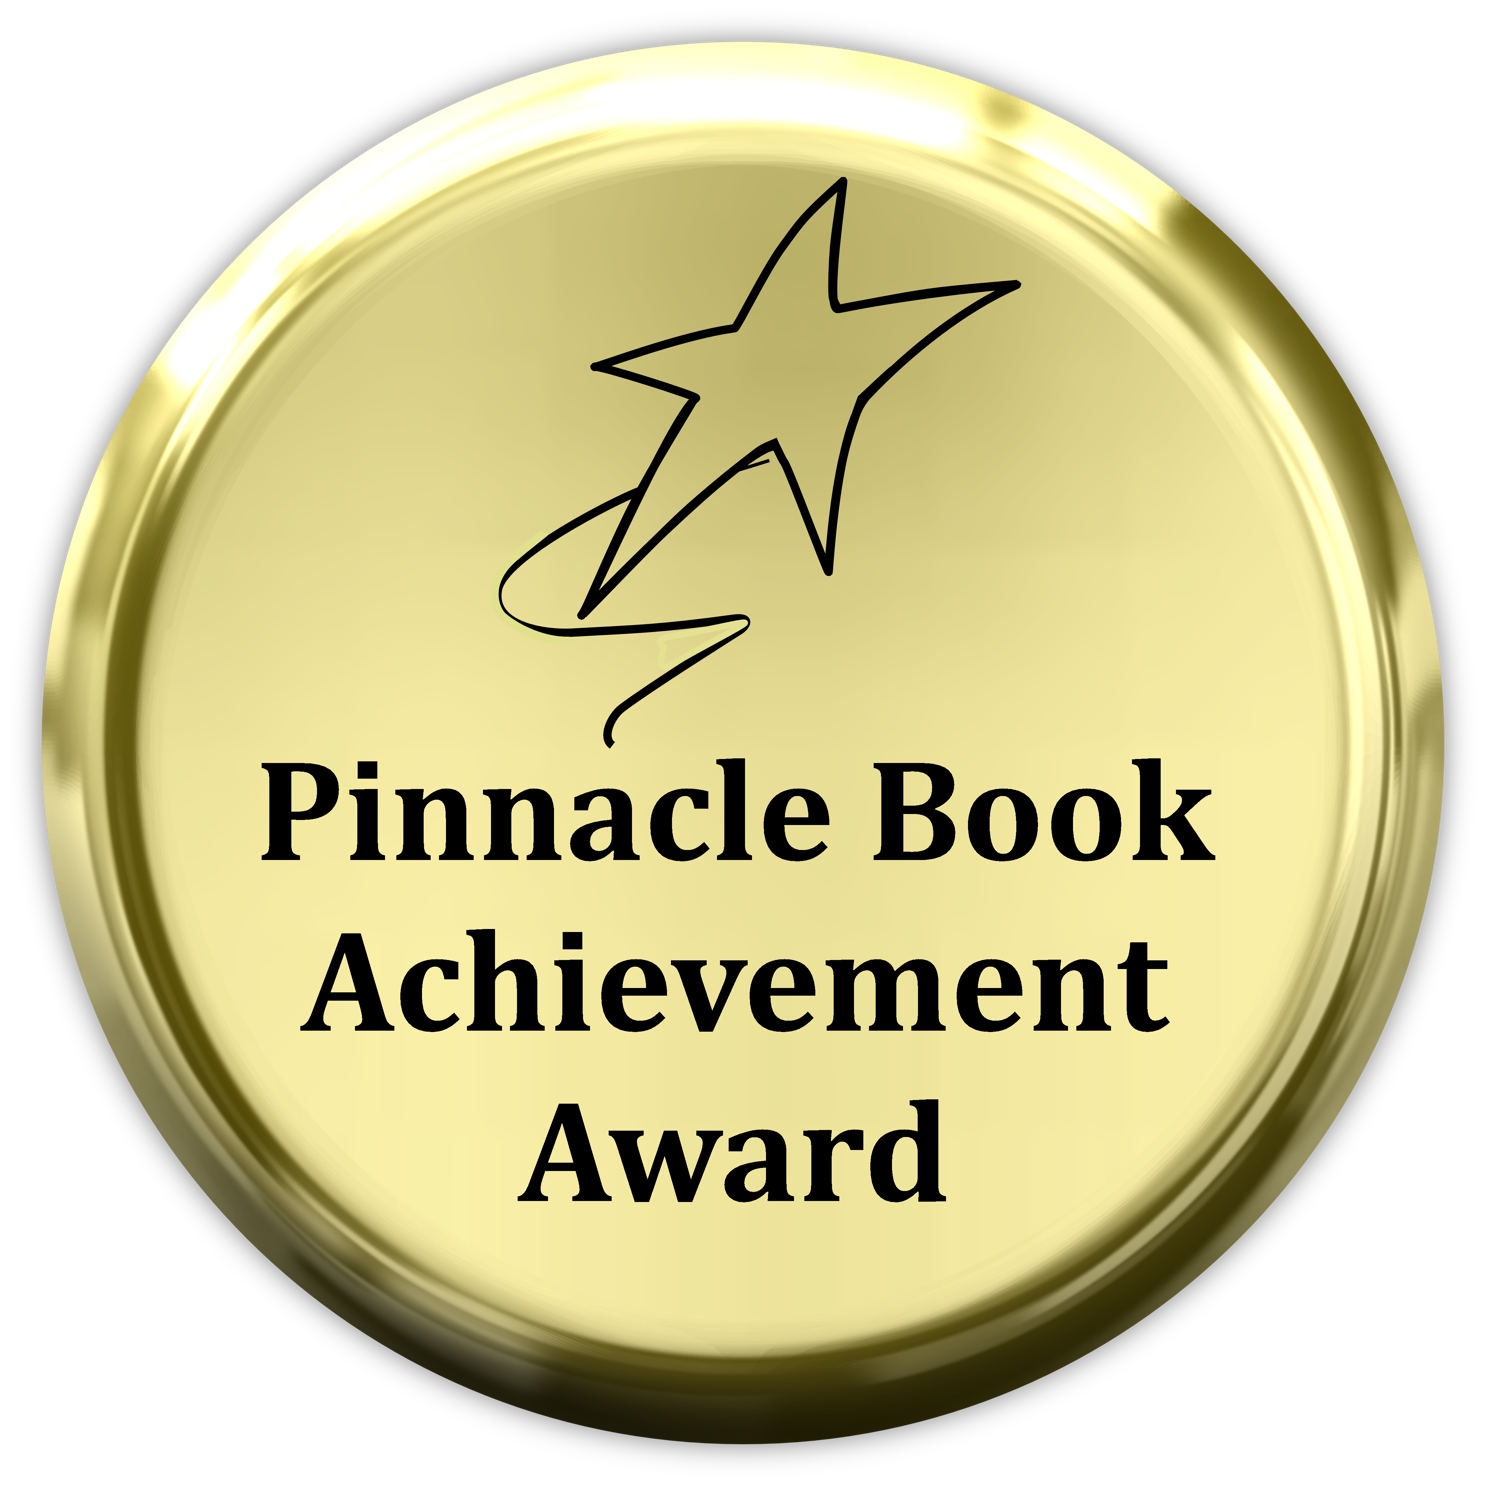 Talk, Play, and Read with Me Daddy by Gramlich - Pinnacle Book Achievement award